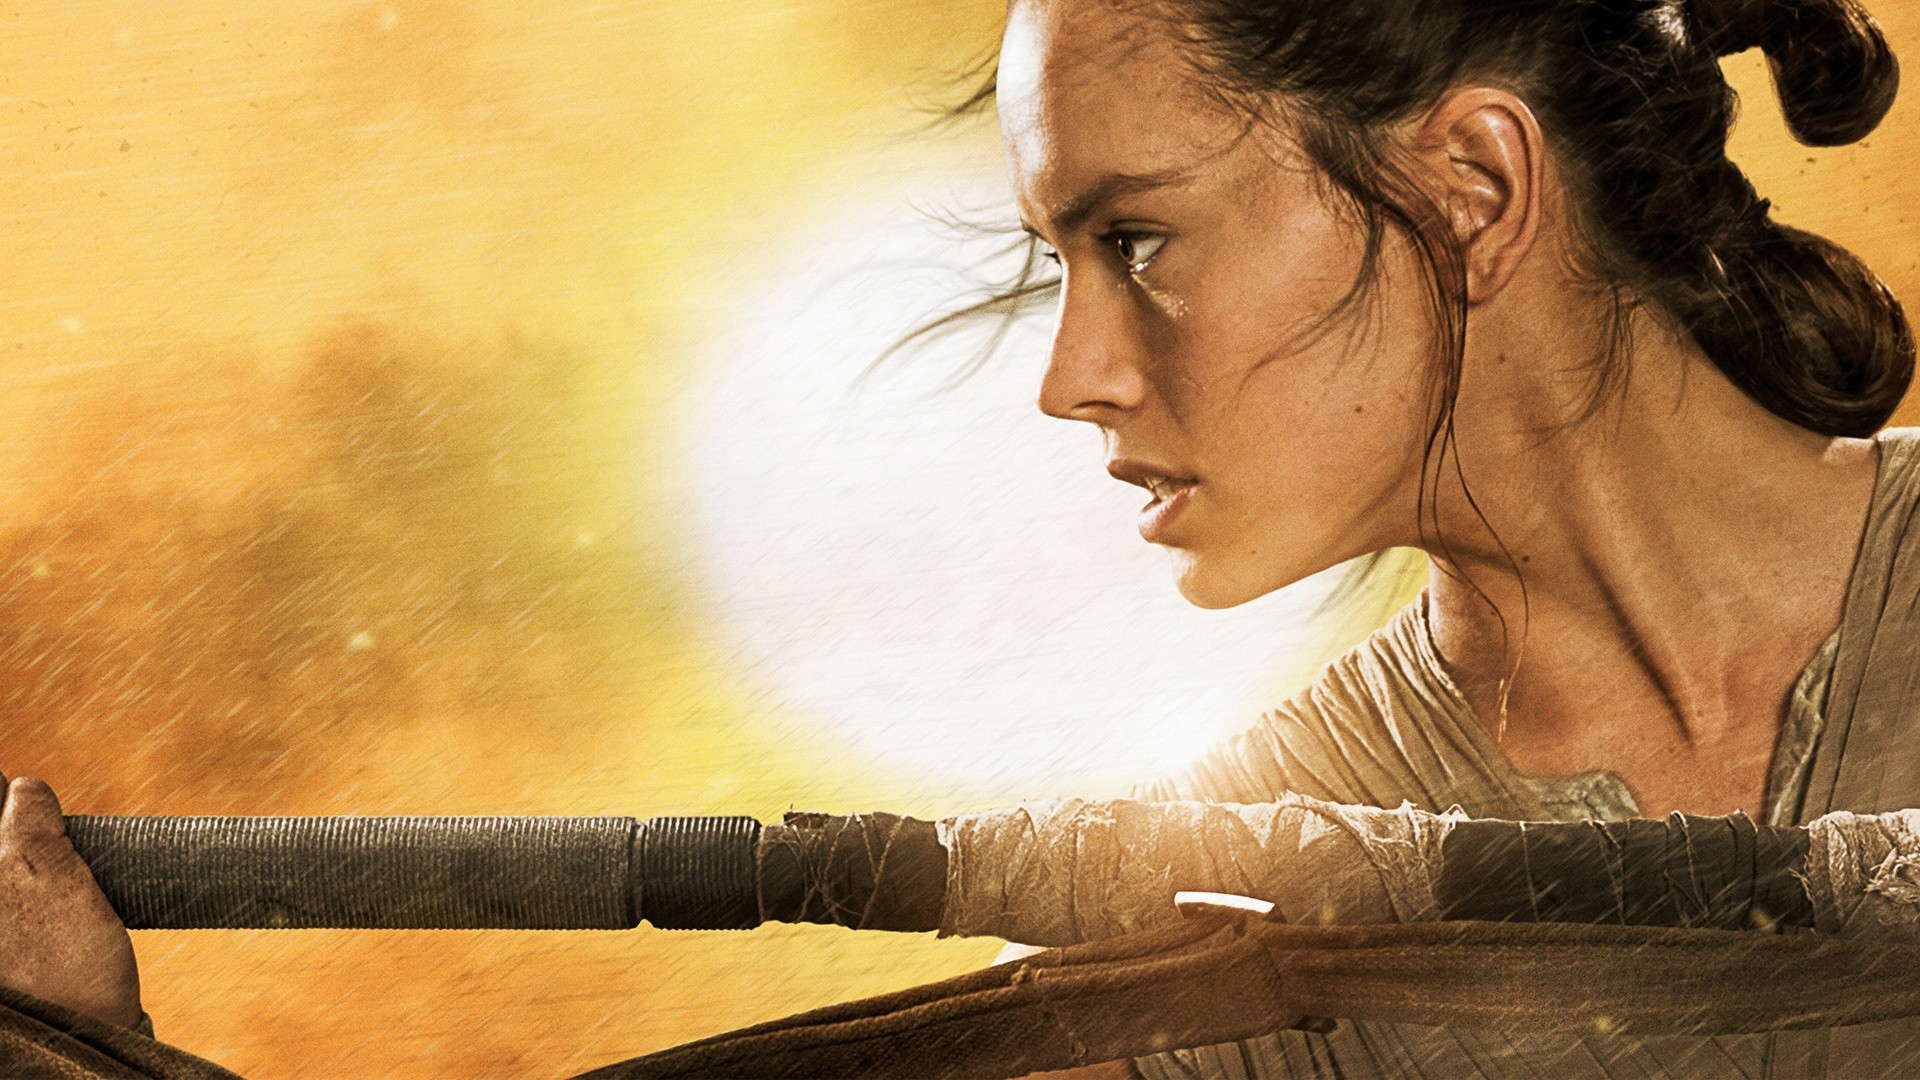 Star Wars The Force Awakens Rey Wallpapers   HD Wallpapers HTML code